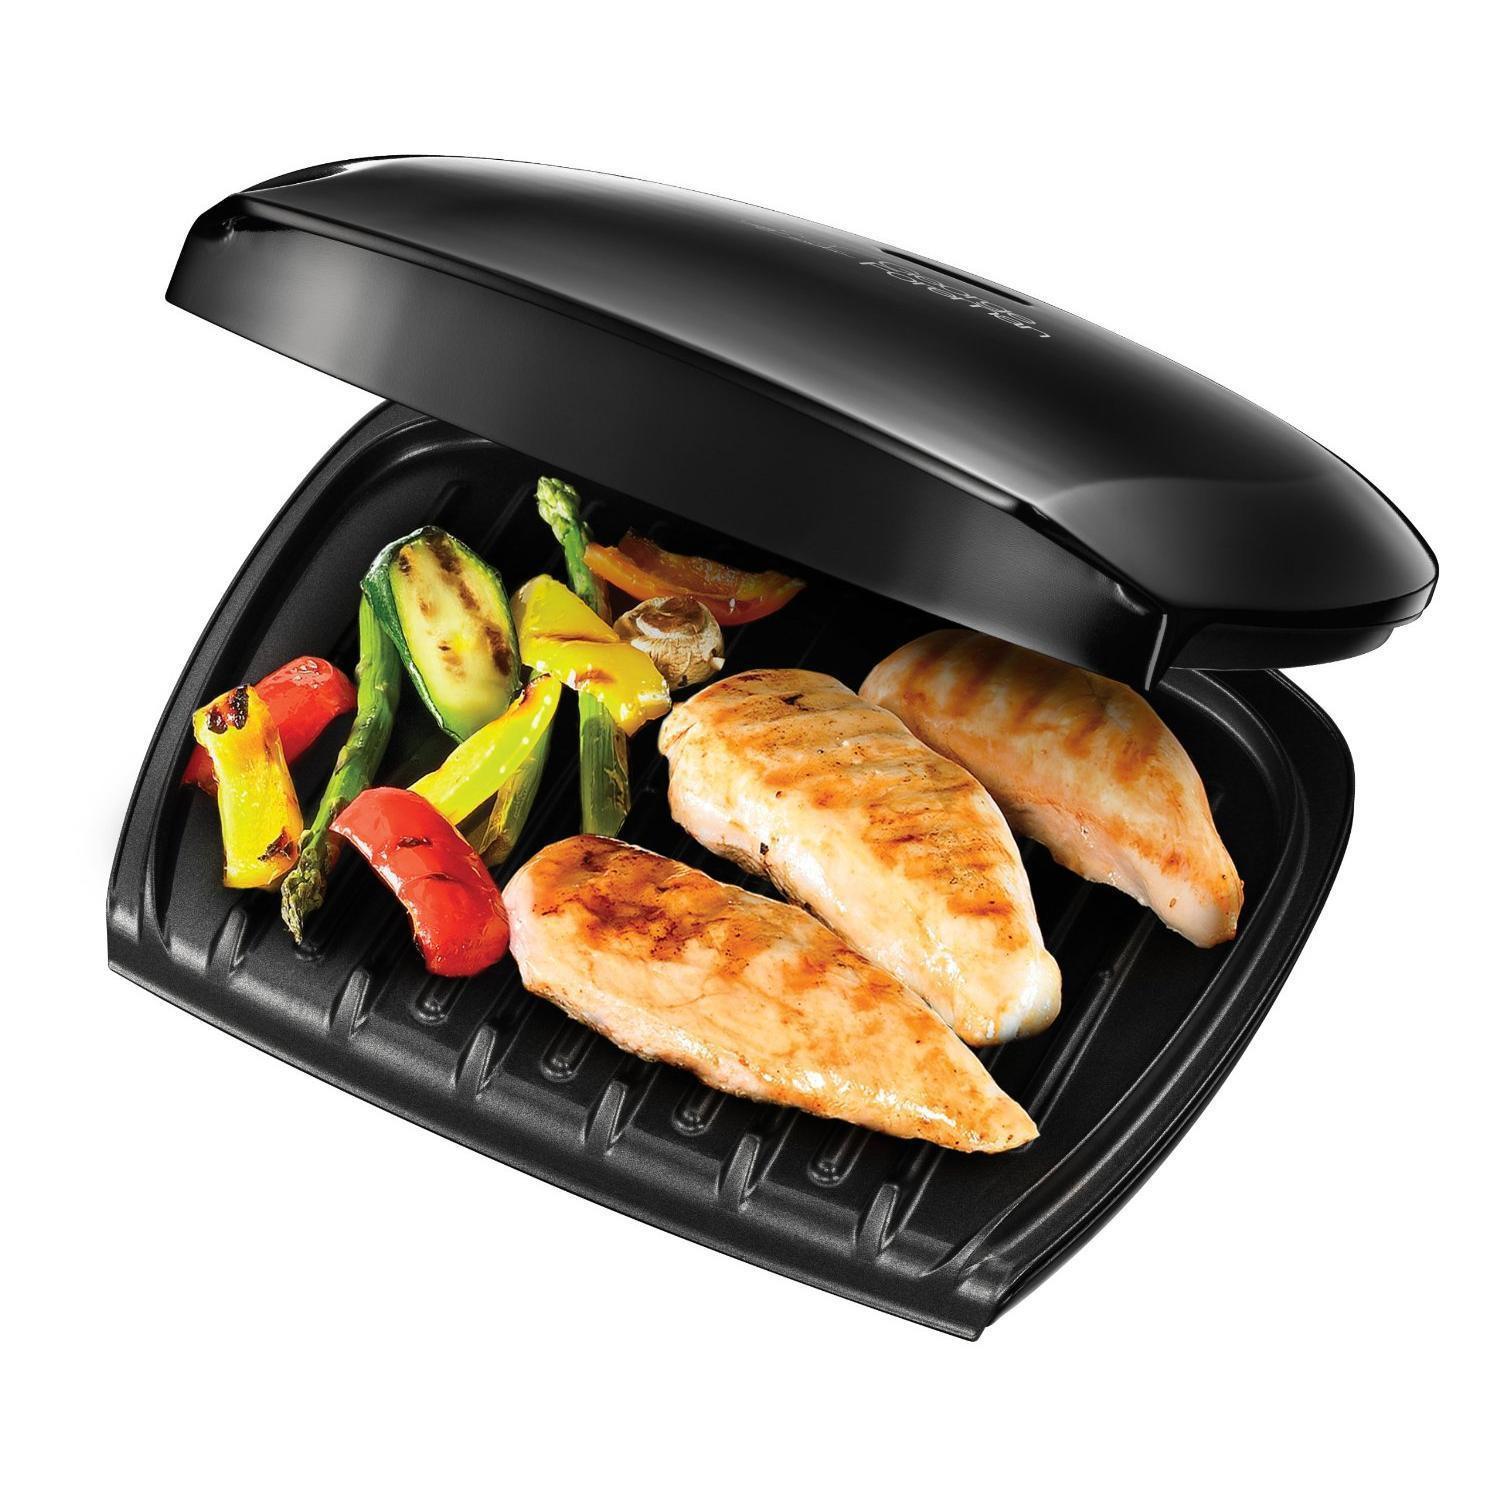 GRILL GEORGE FOREMAN 18870 Réducteur De Graisse 5 Portions